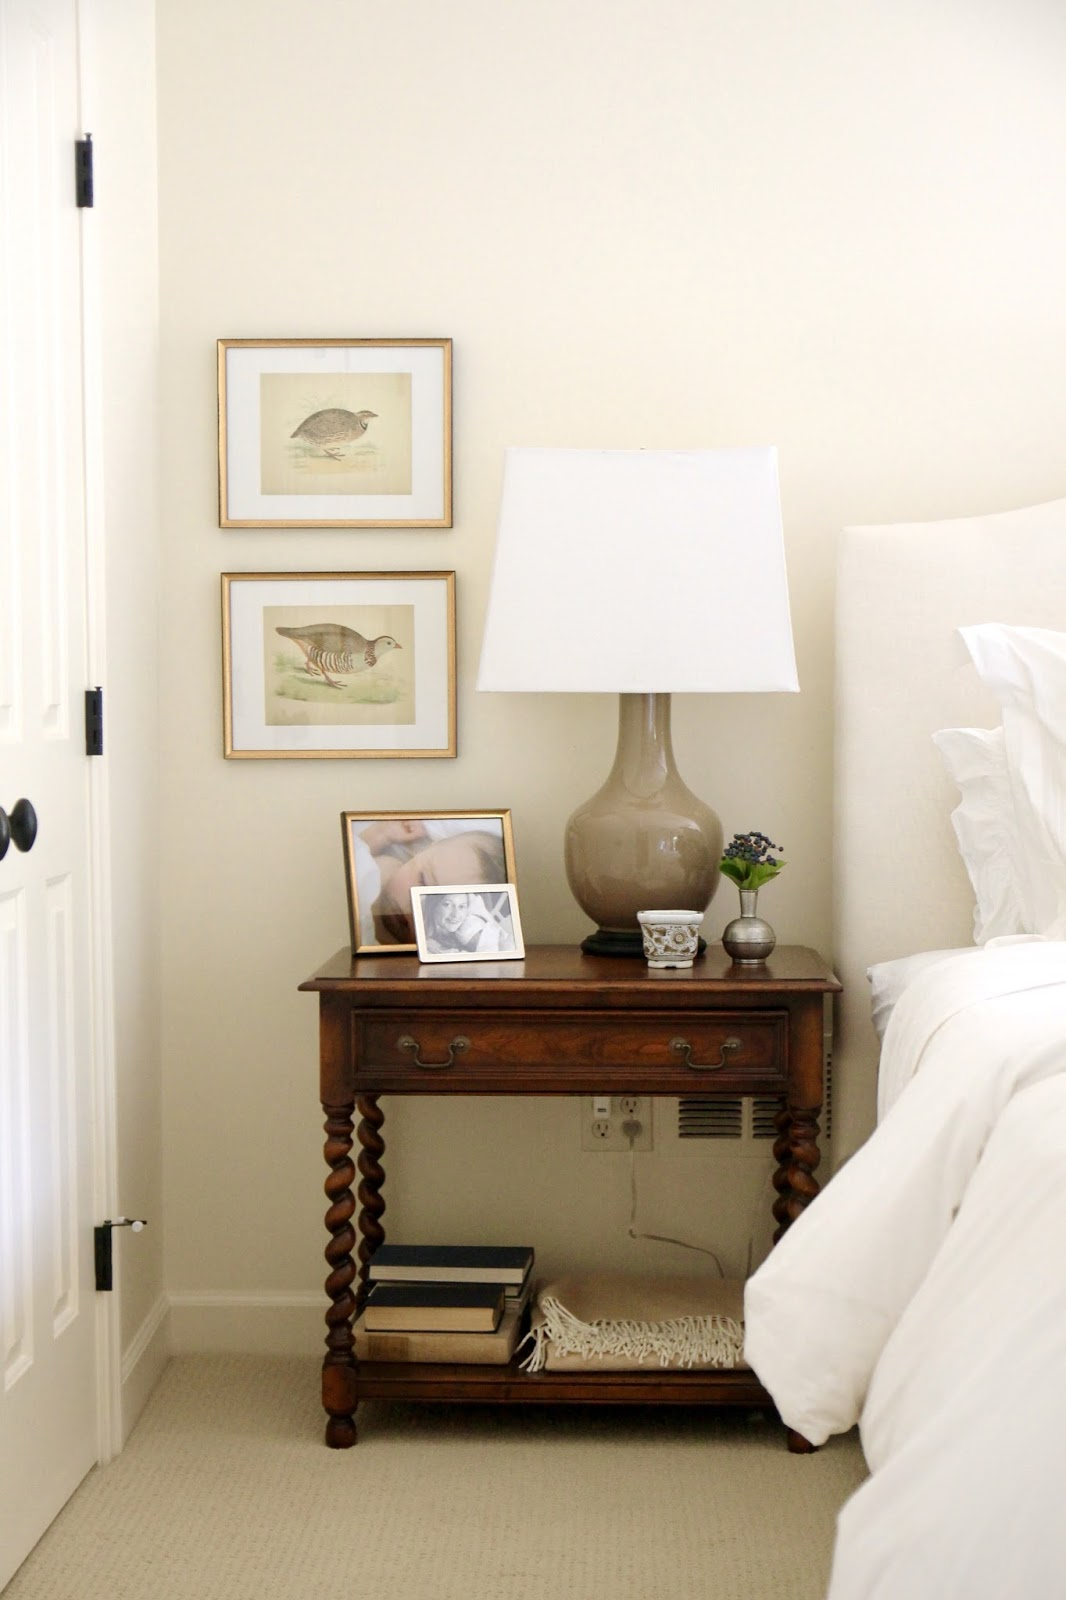 Because Our Room Is So Neutral, That Little Pillow Change With A Small Vase  Of A Seasonal Flowers On The Bedside Really Does Make Our Entire Room Feel  Fresh ...